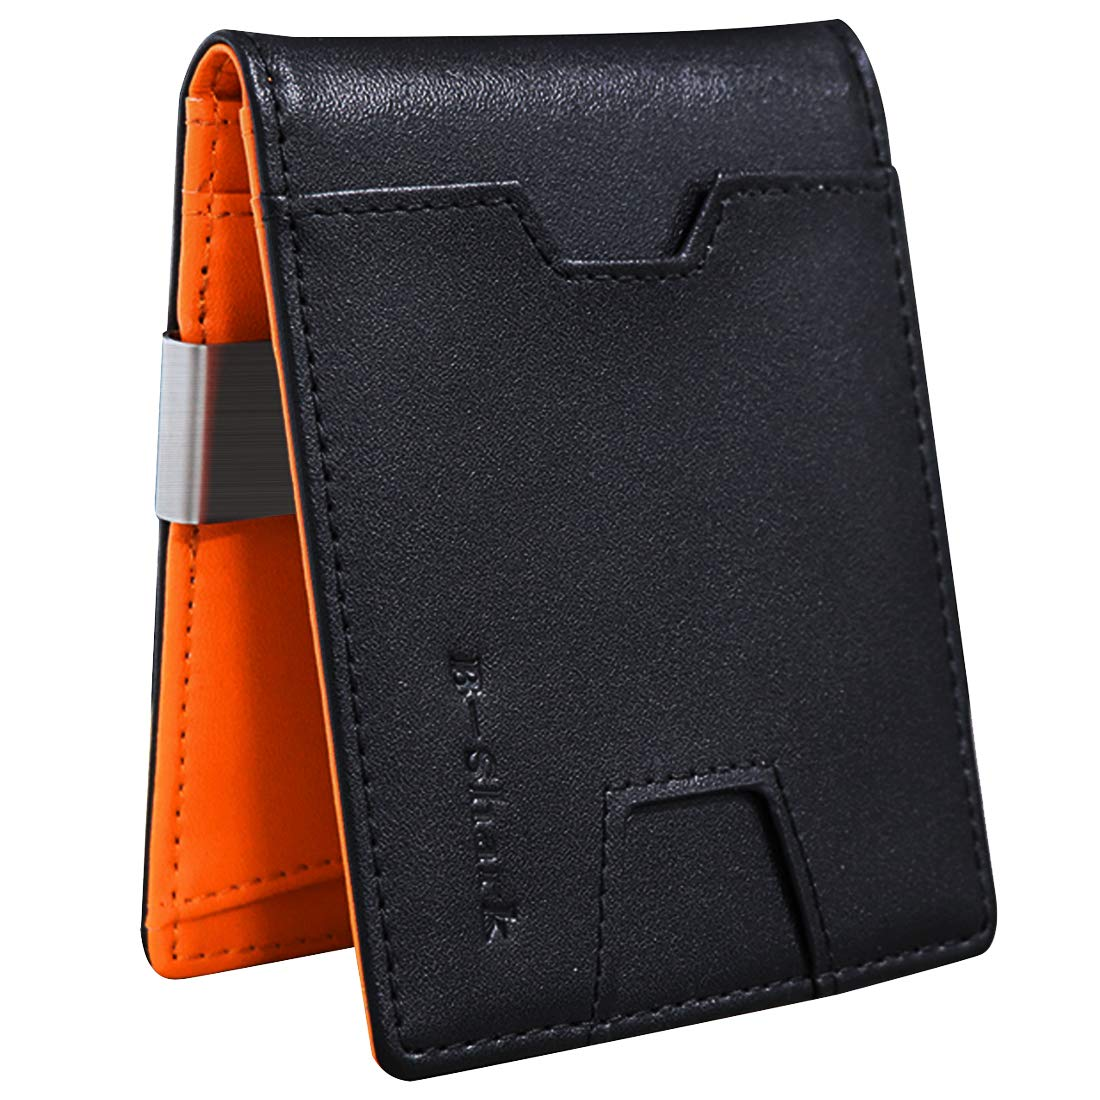 Amazon.com: Cartera fina con clip para dinero RFID Blocking ...